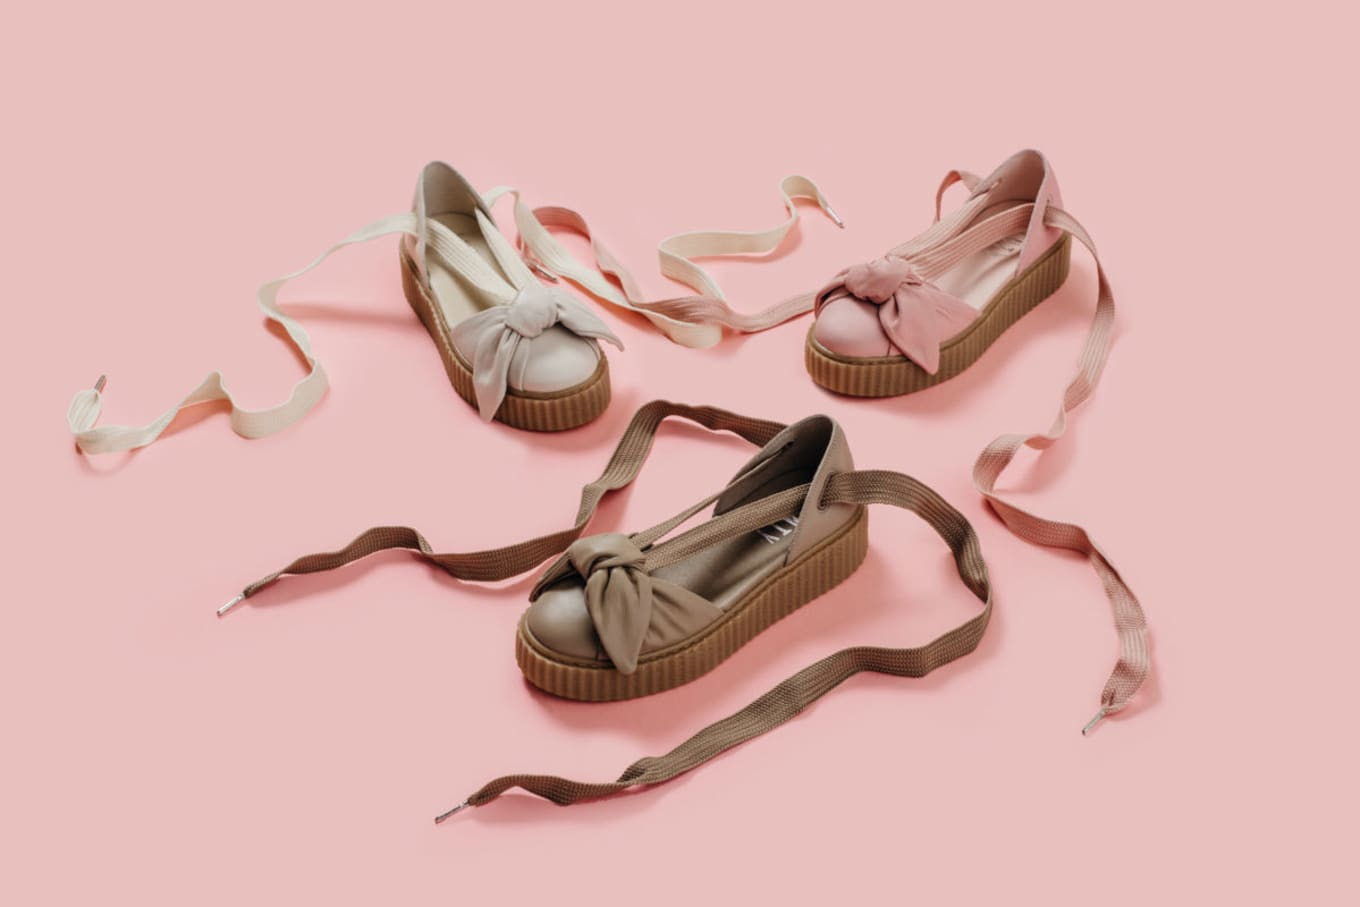 78a7d6be18a2 The Bow Creeper Sandal validates Fenty partnership.